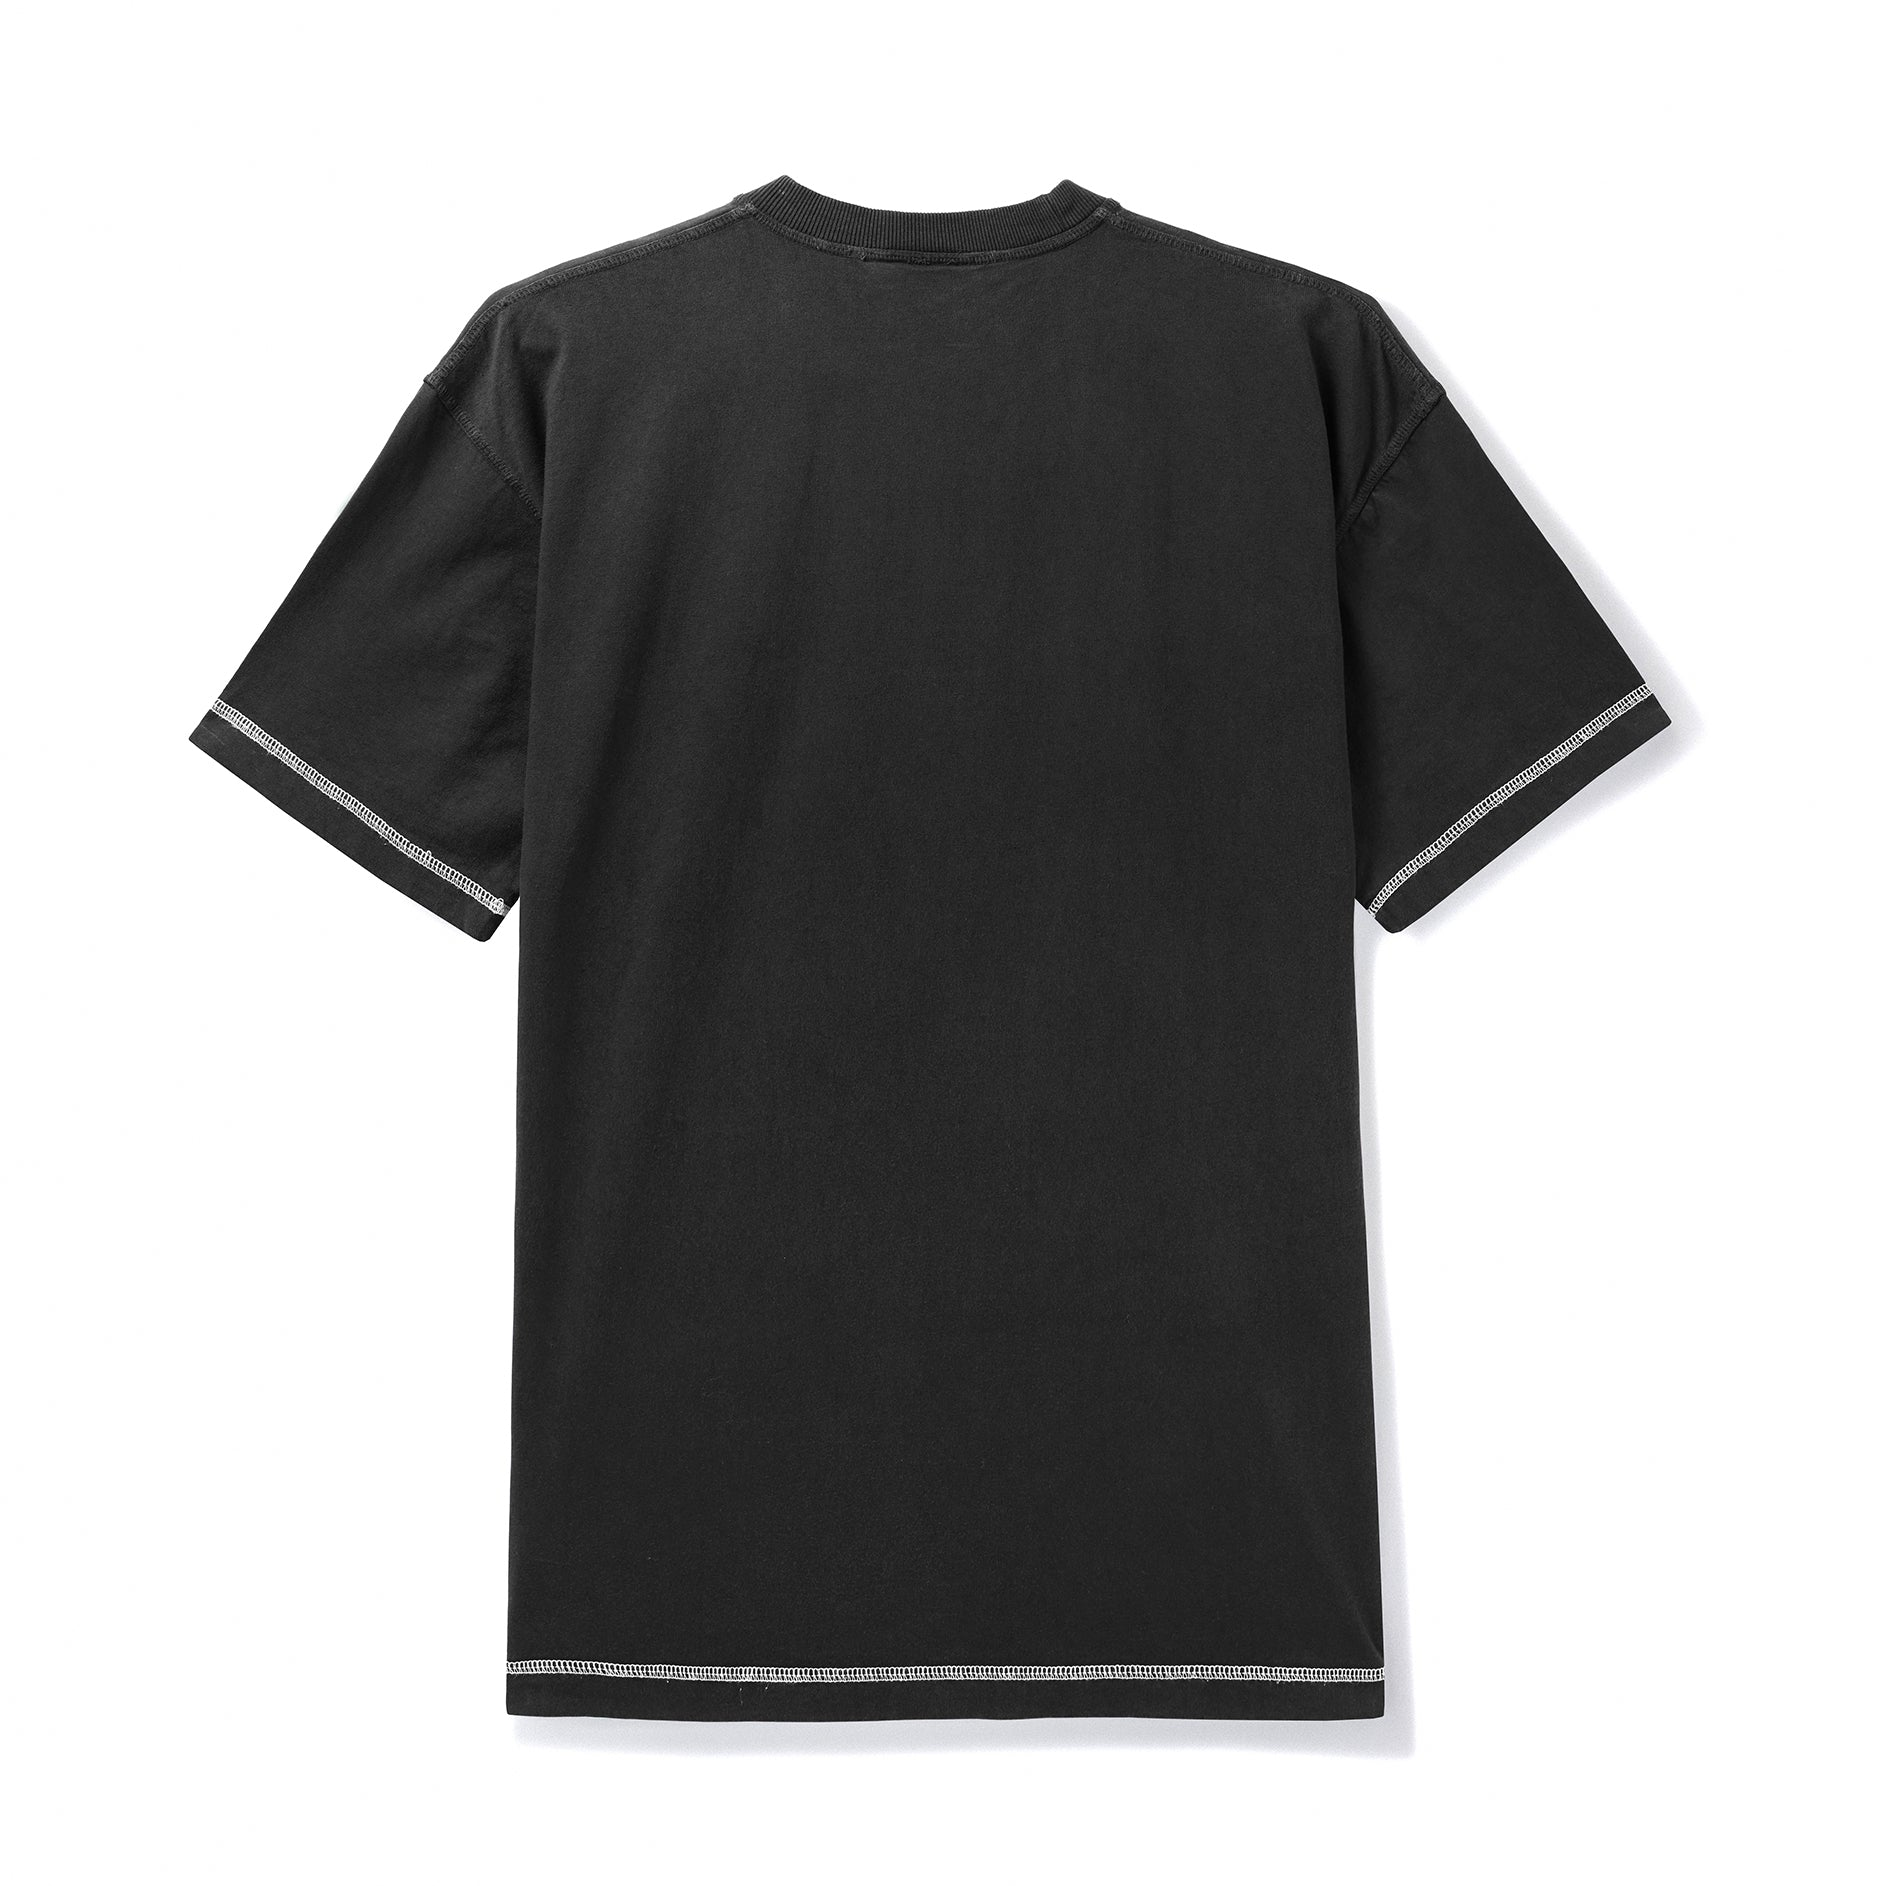 Butter Goods Chain Stitch Tee Product Photo #2